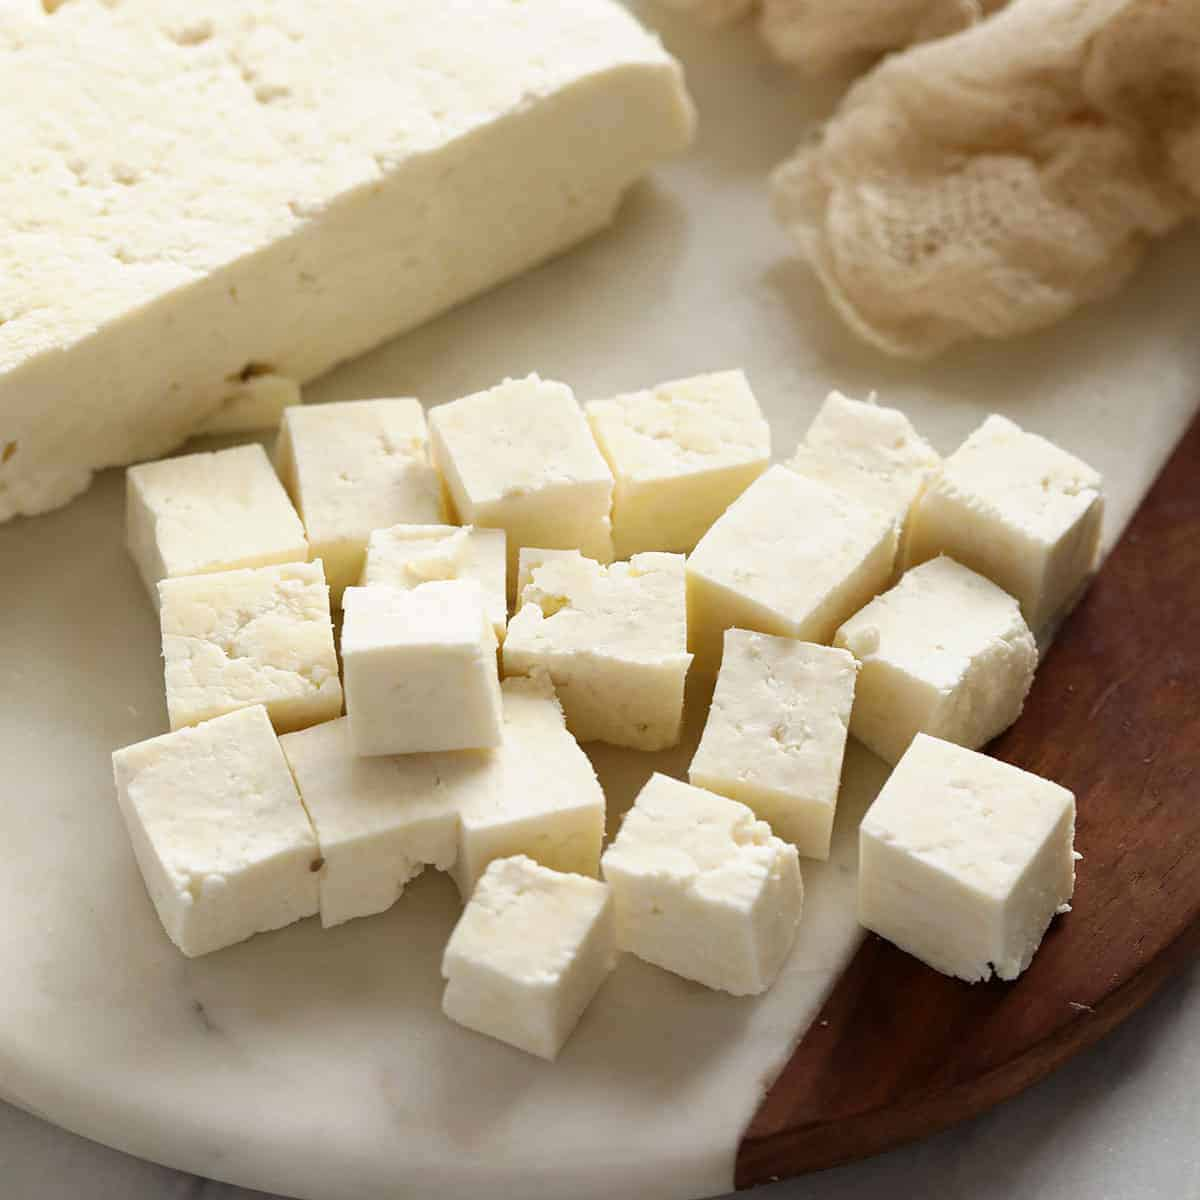 Paneer cut into cubes on cutting board